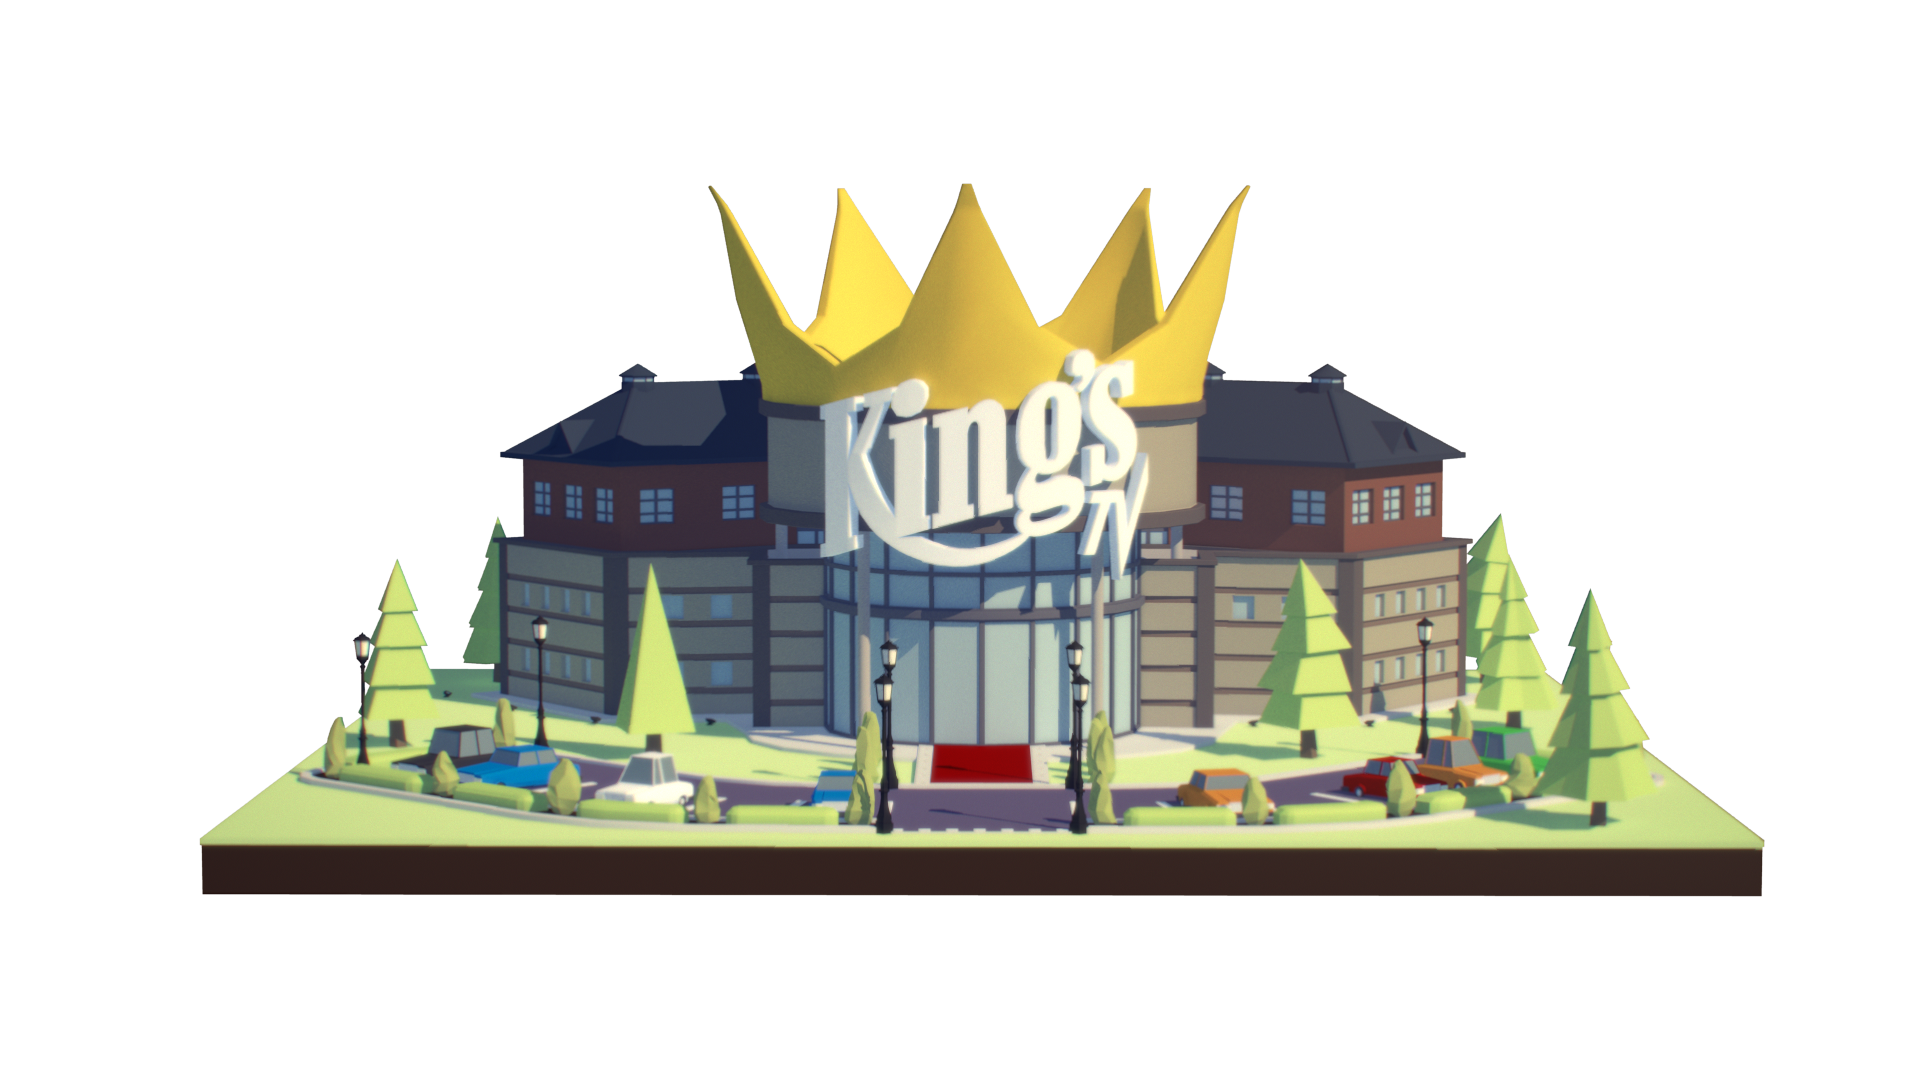 KingsTV Main building picture